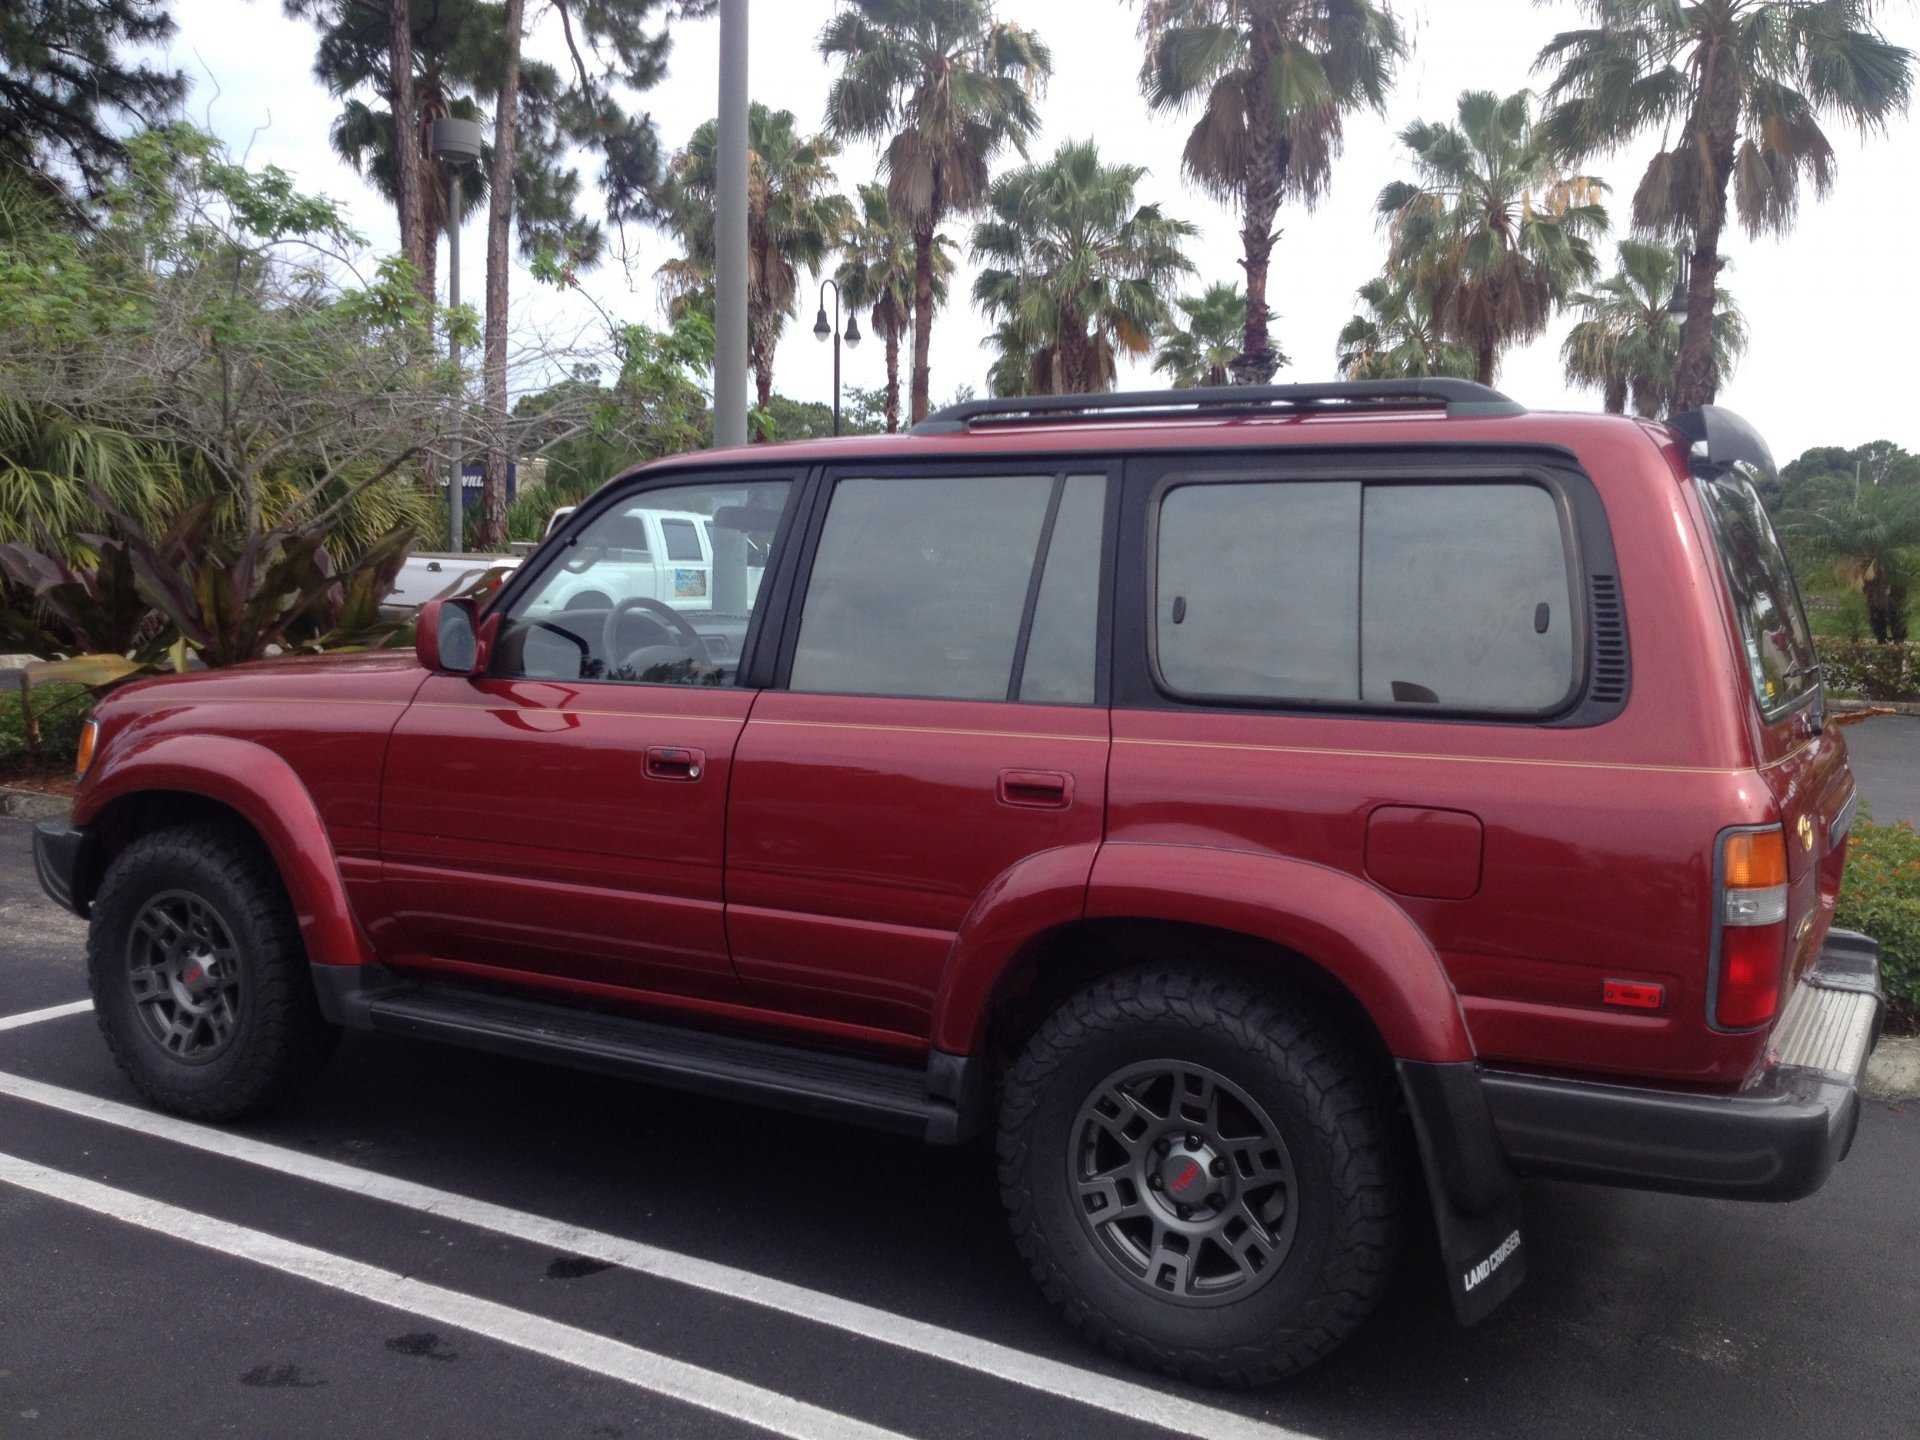 4Runner Trd Pro >> My 1996 FZJ80 Land Cruiser | IH8MUD Forum